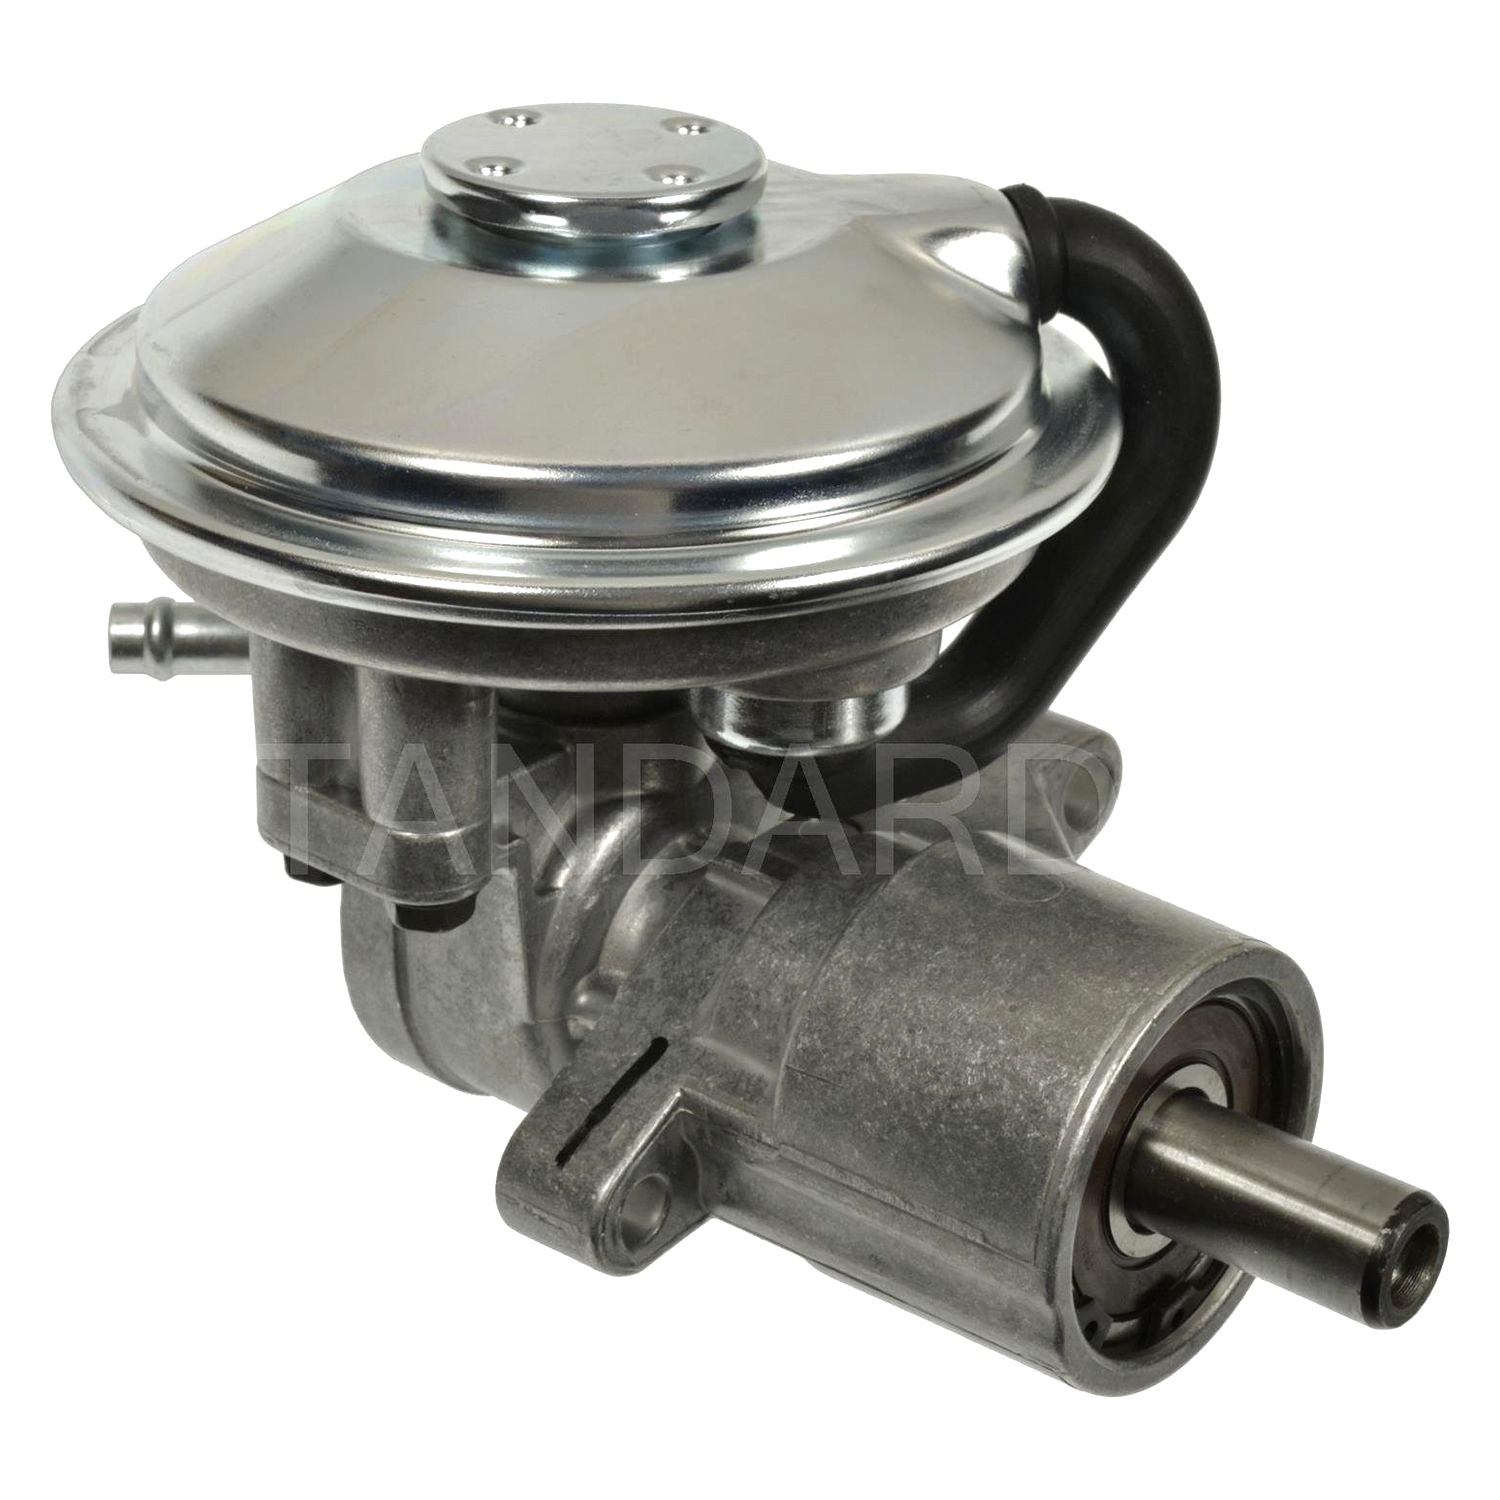 [1963 Ford E Series Vacuum Pump How To Connect]